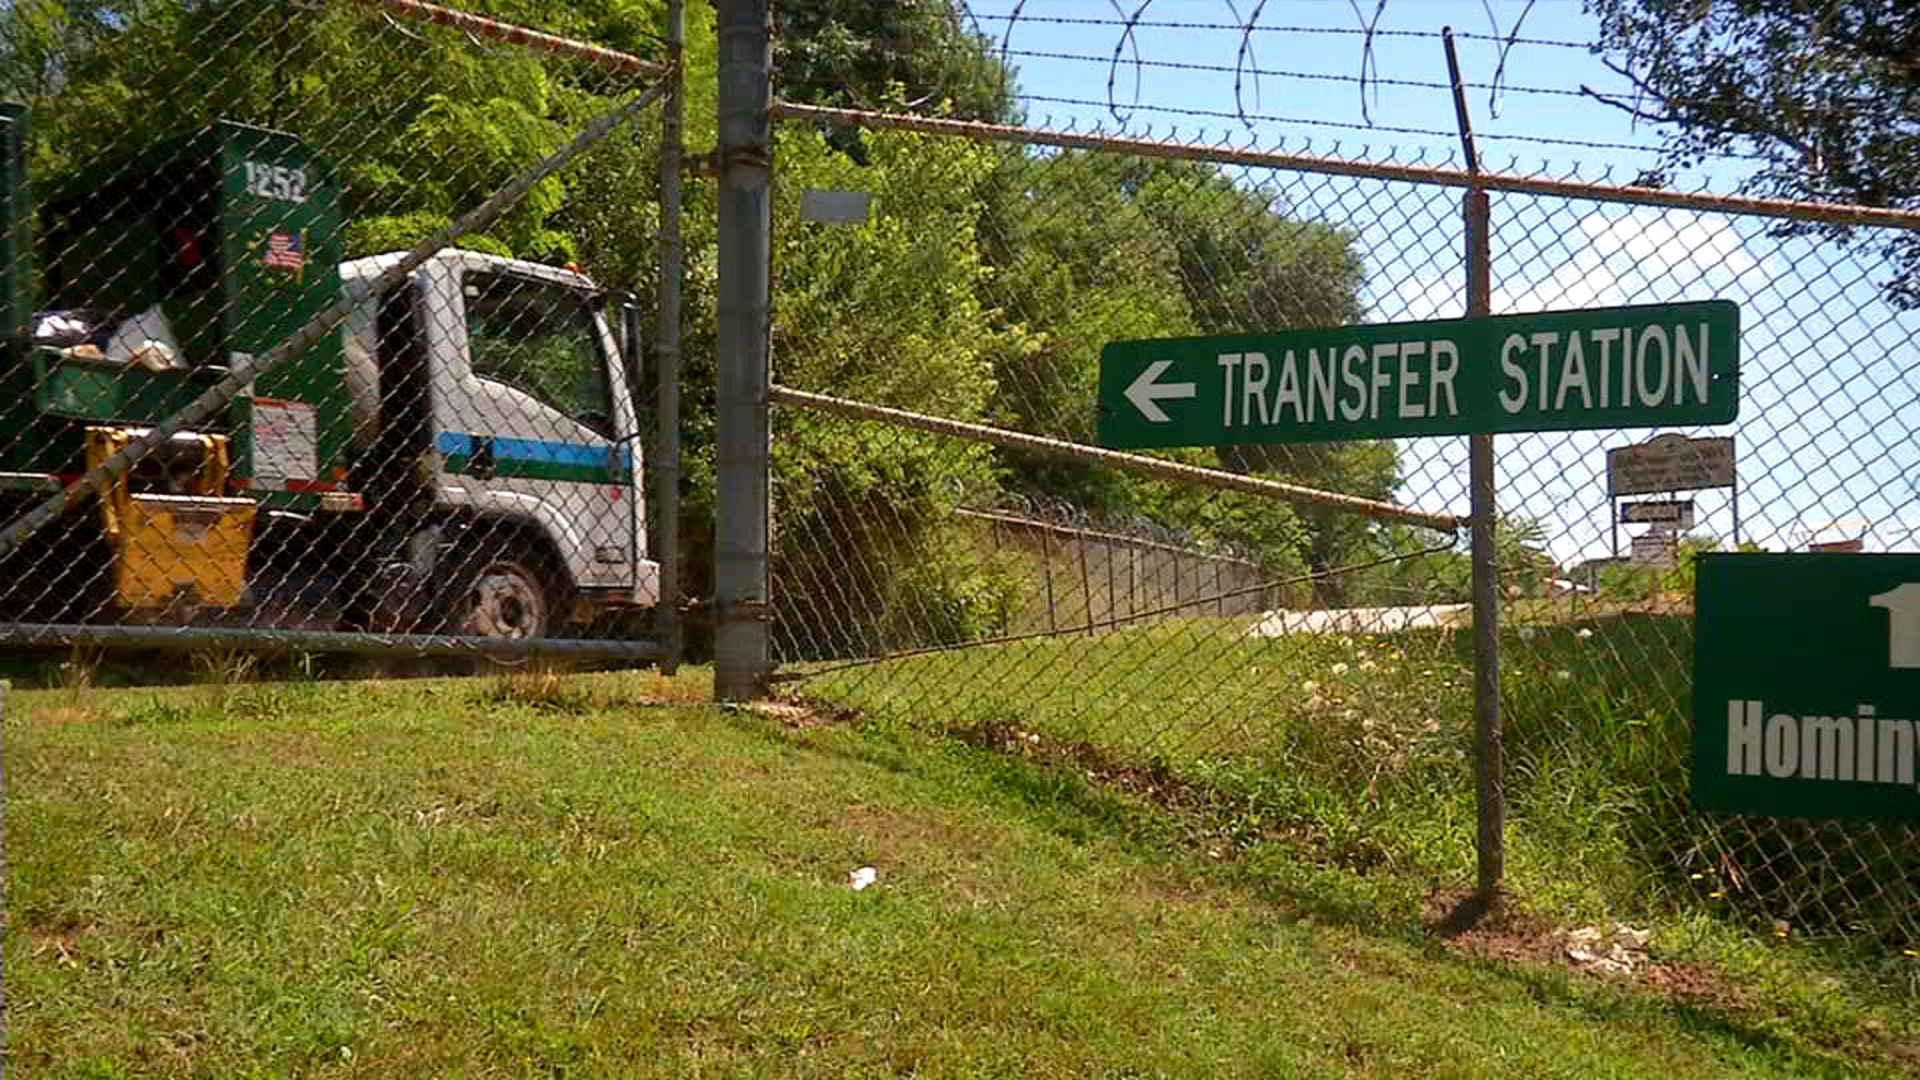 The French Broad Riverkeeper says he wants to test the water quality by the transfer station. (Photo credit: WLOS)